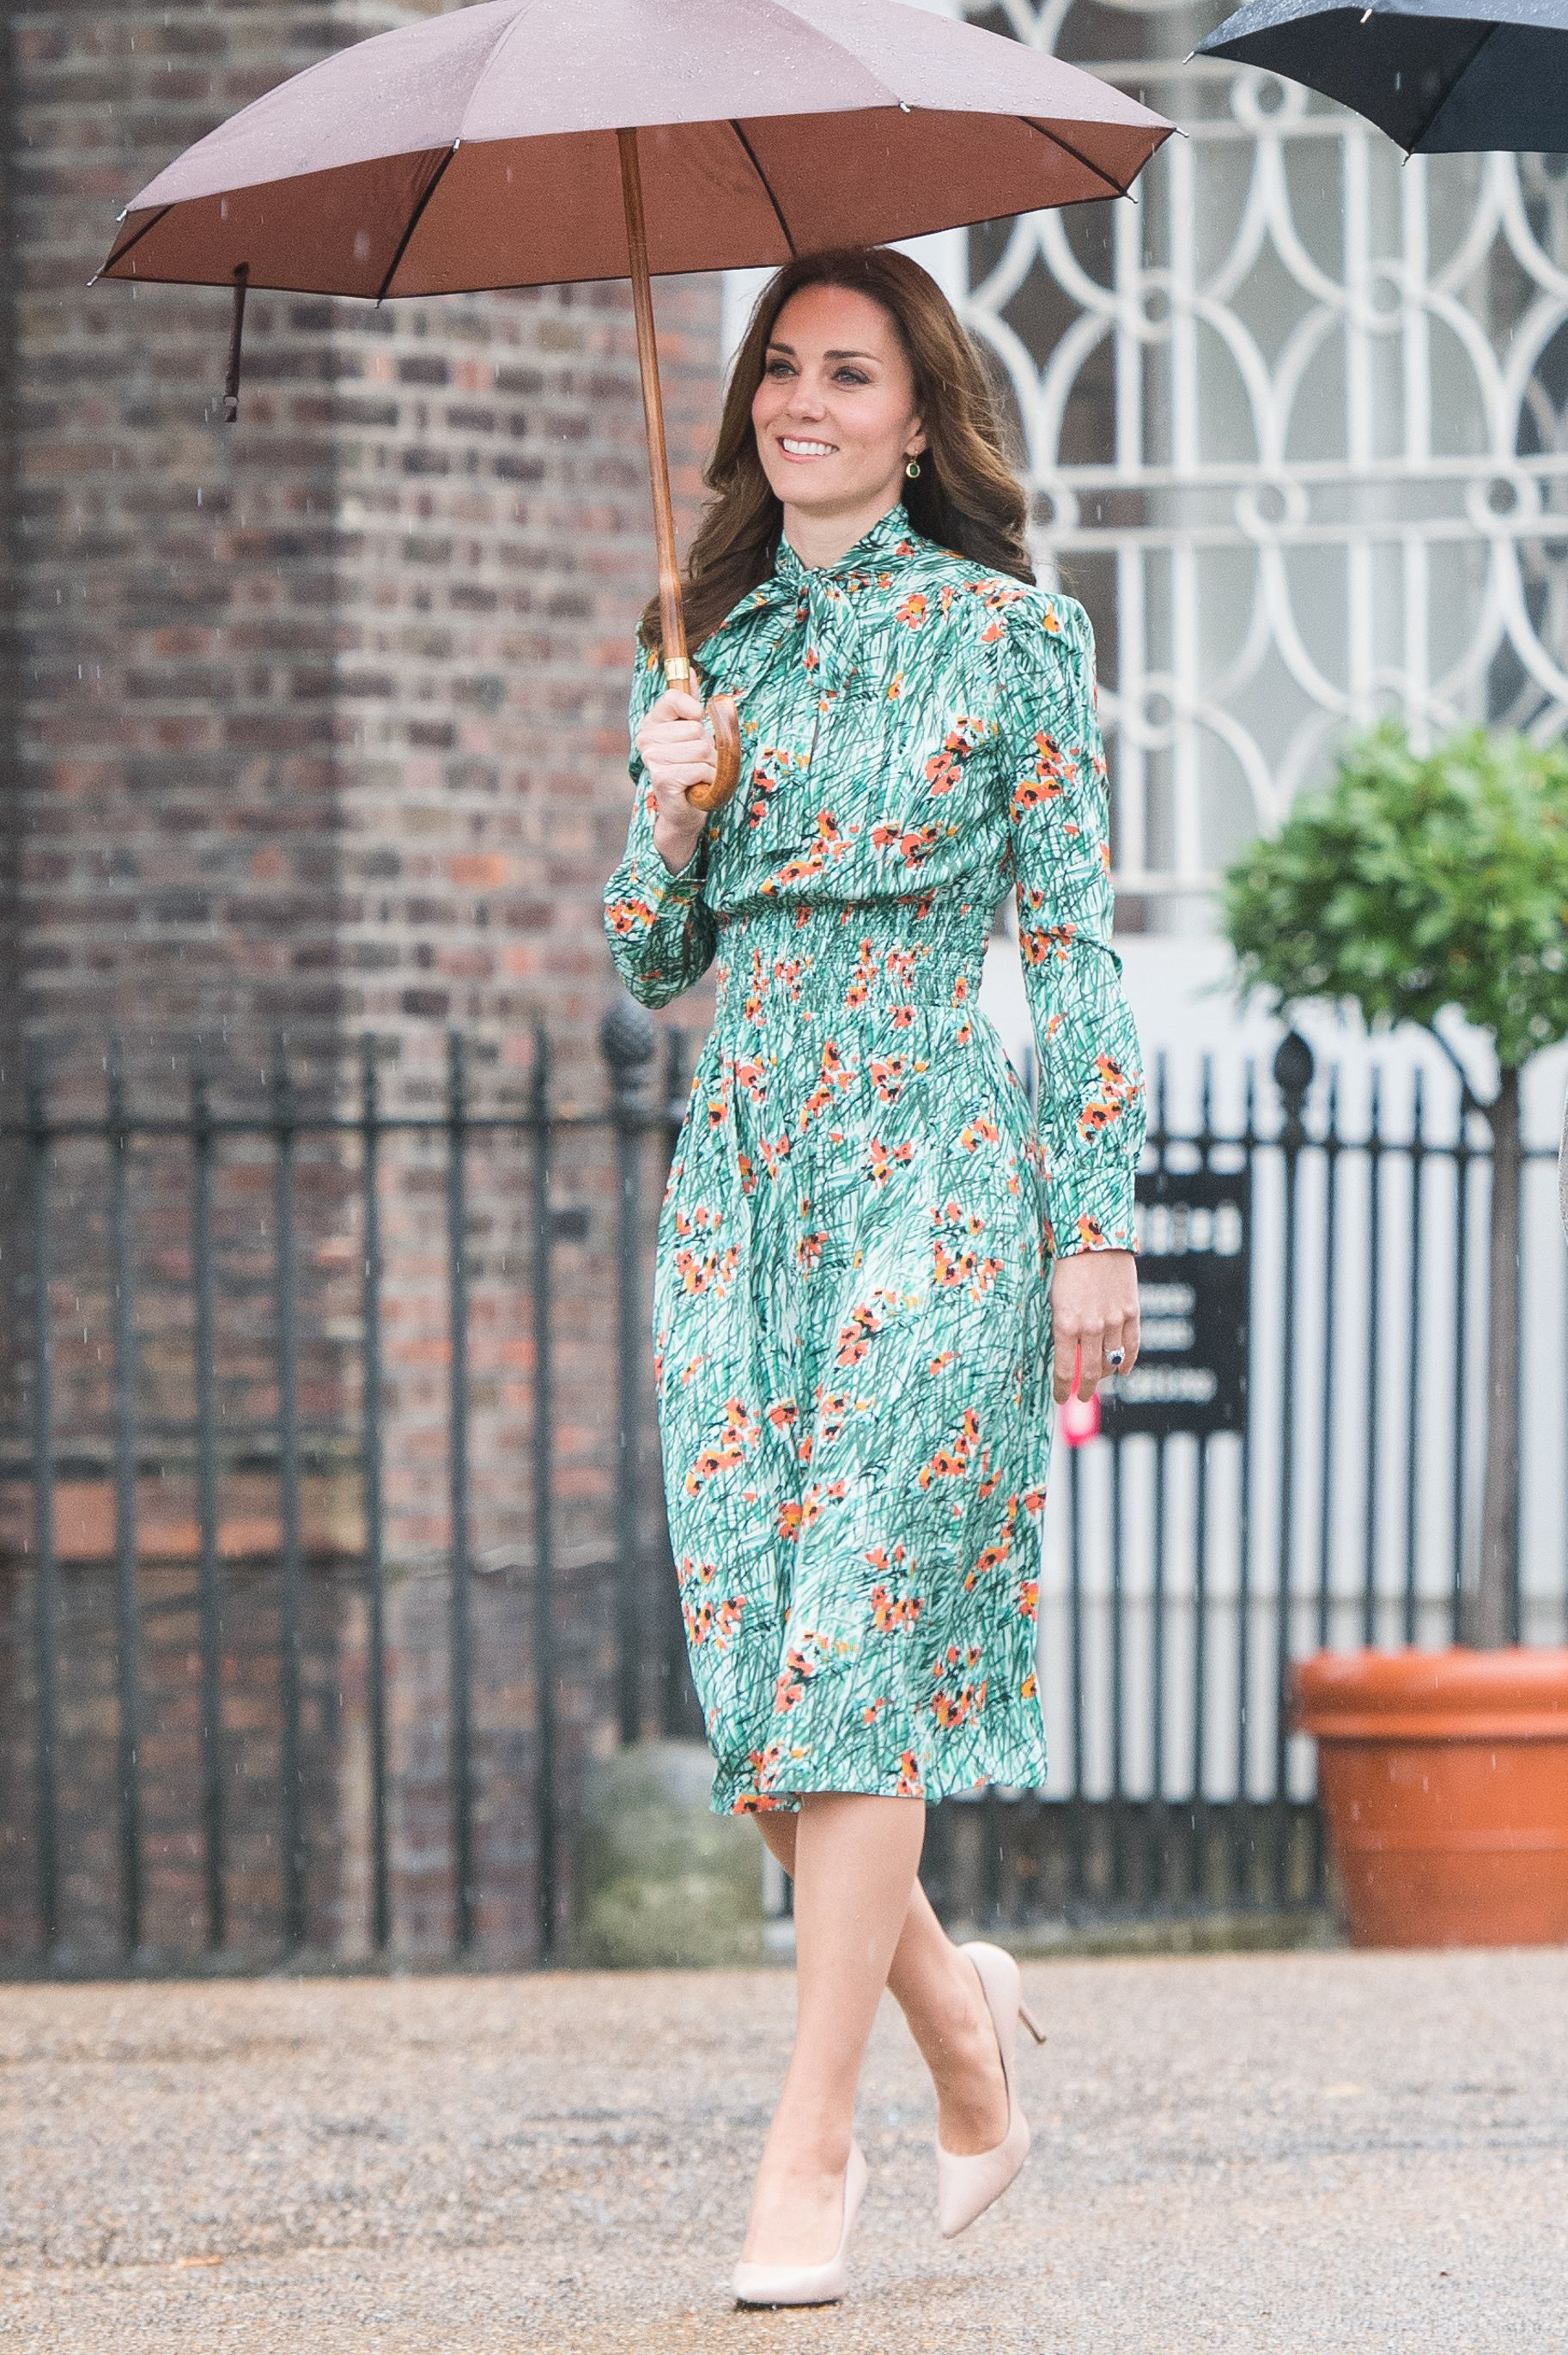 Shop Now L.K. Bennett Fern Heels in Trench, $295 Kate first wore these four-inch L.K. Bennett heels during the royal tour of India in 2016 and has continued to wear them to events on a regular basis, including the August 2017 dedication of the White Garden at Kensington Palace seen here.